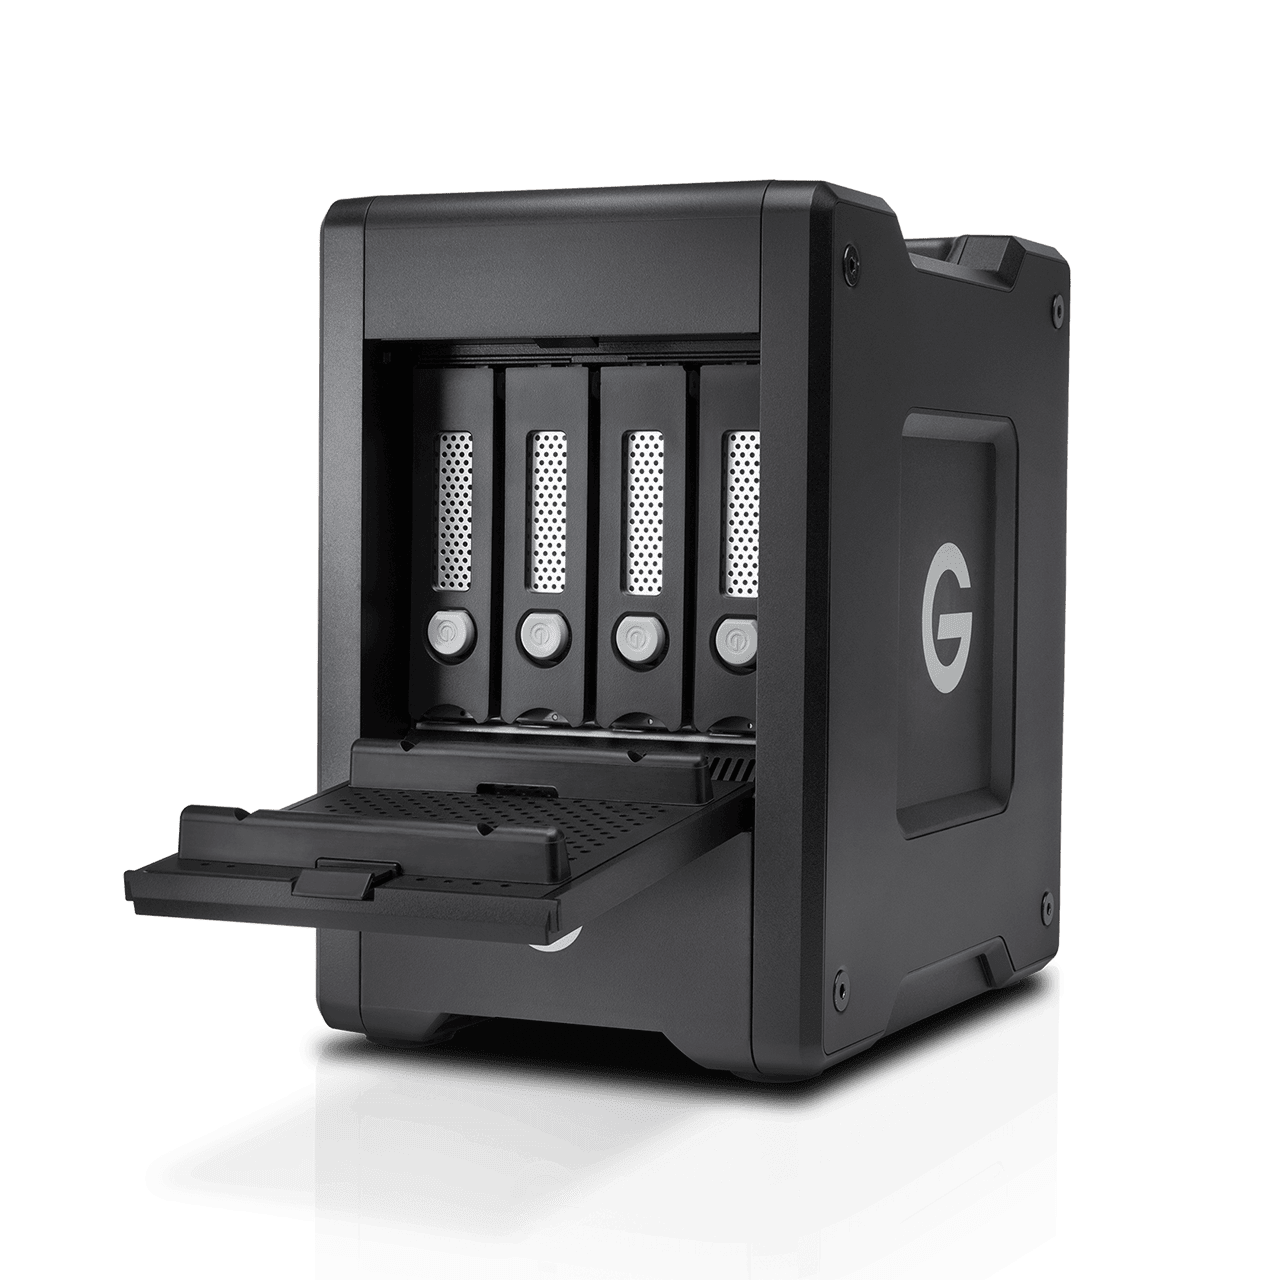 g-speed-shuttle-with-thunderbolt-3-heroopen-png-thumb-1280-1280